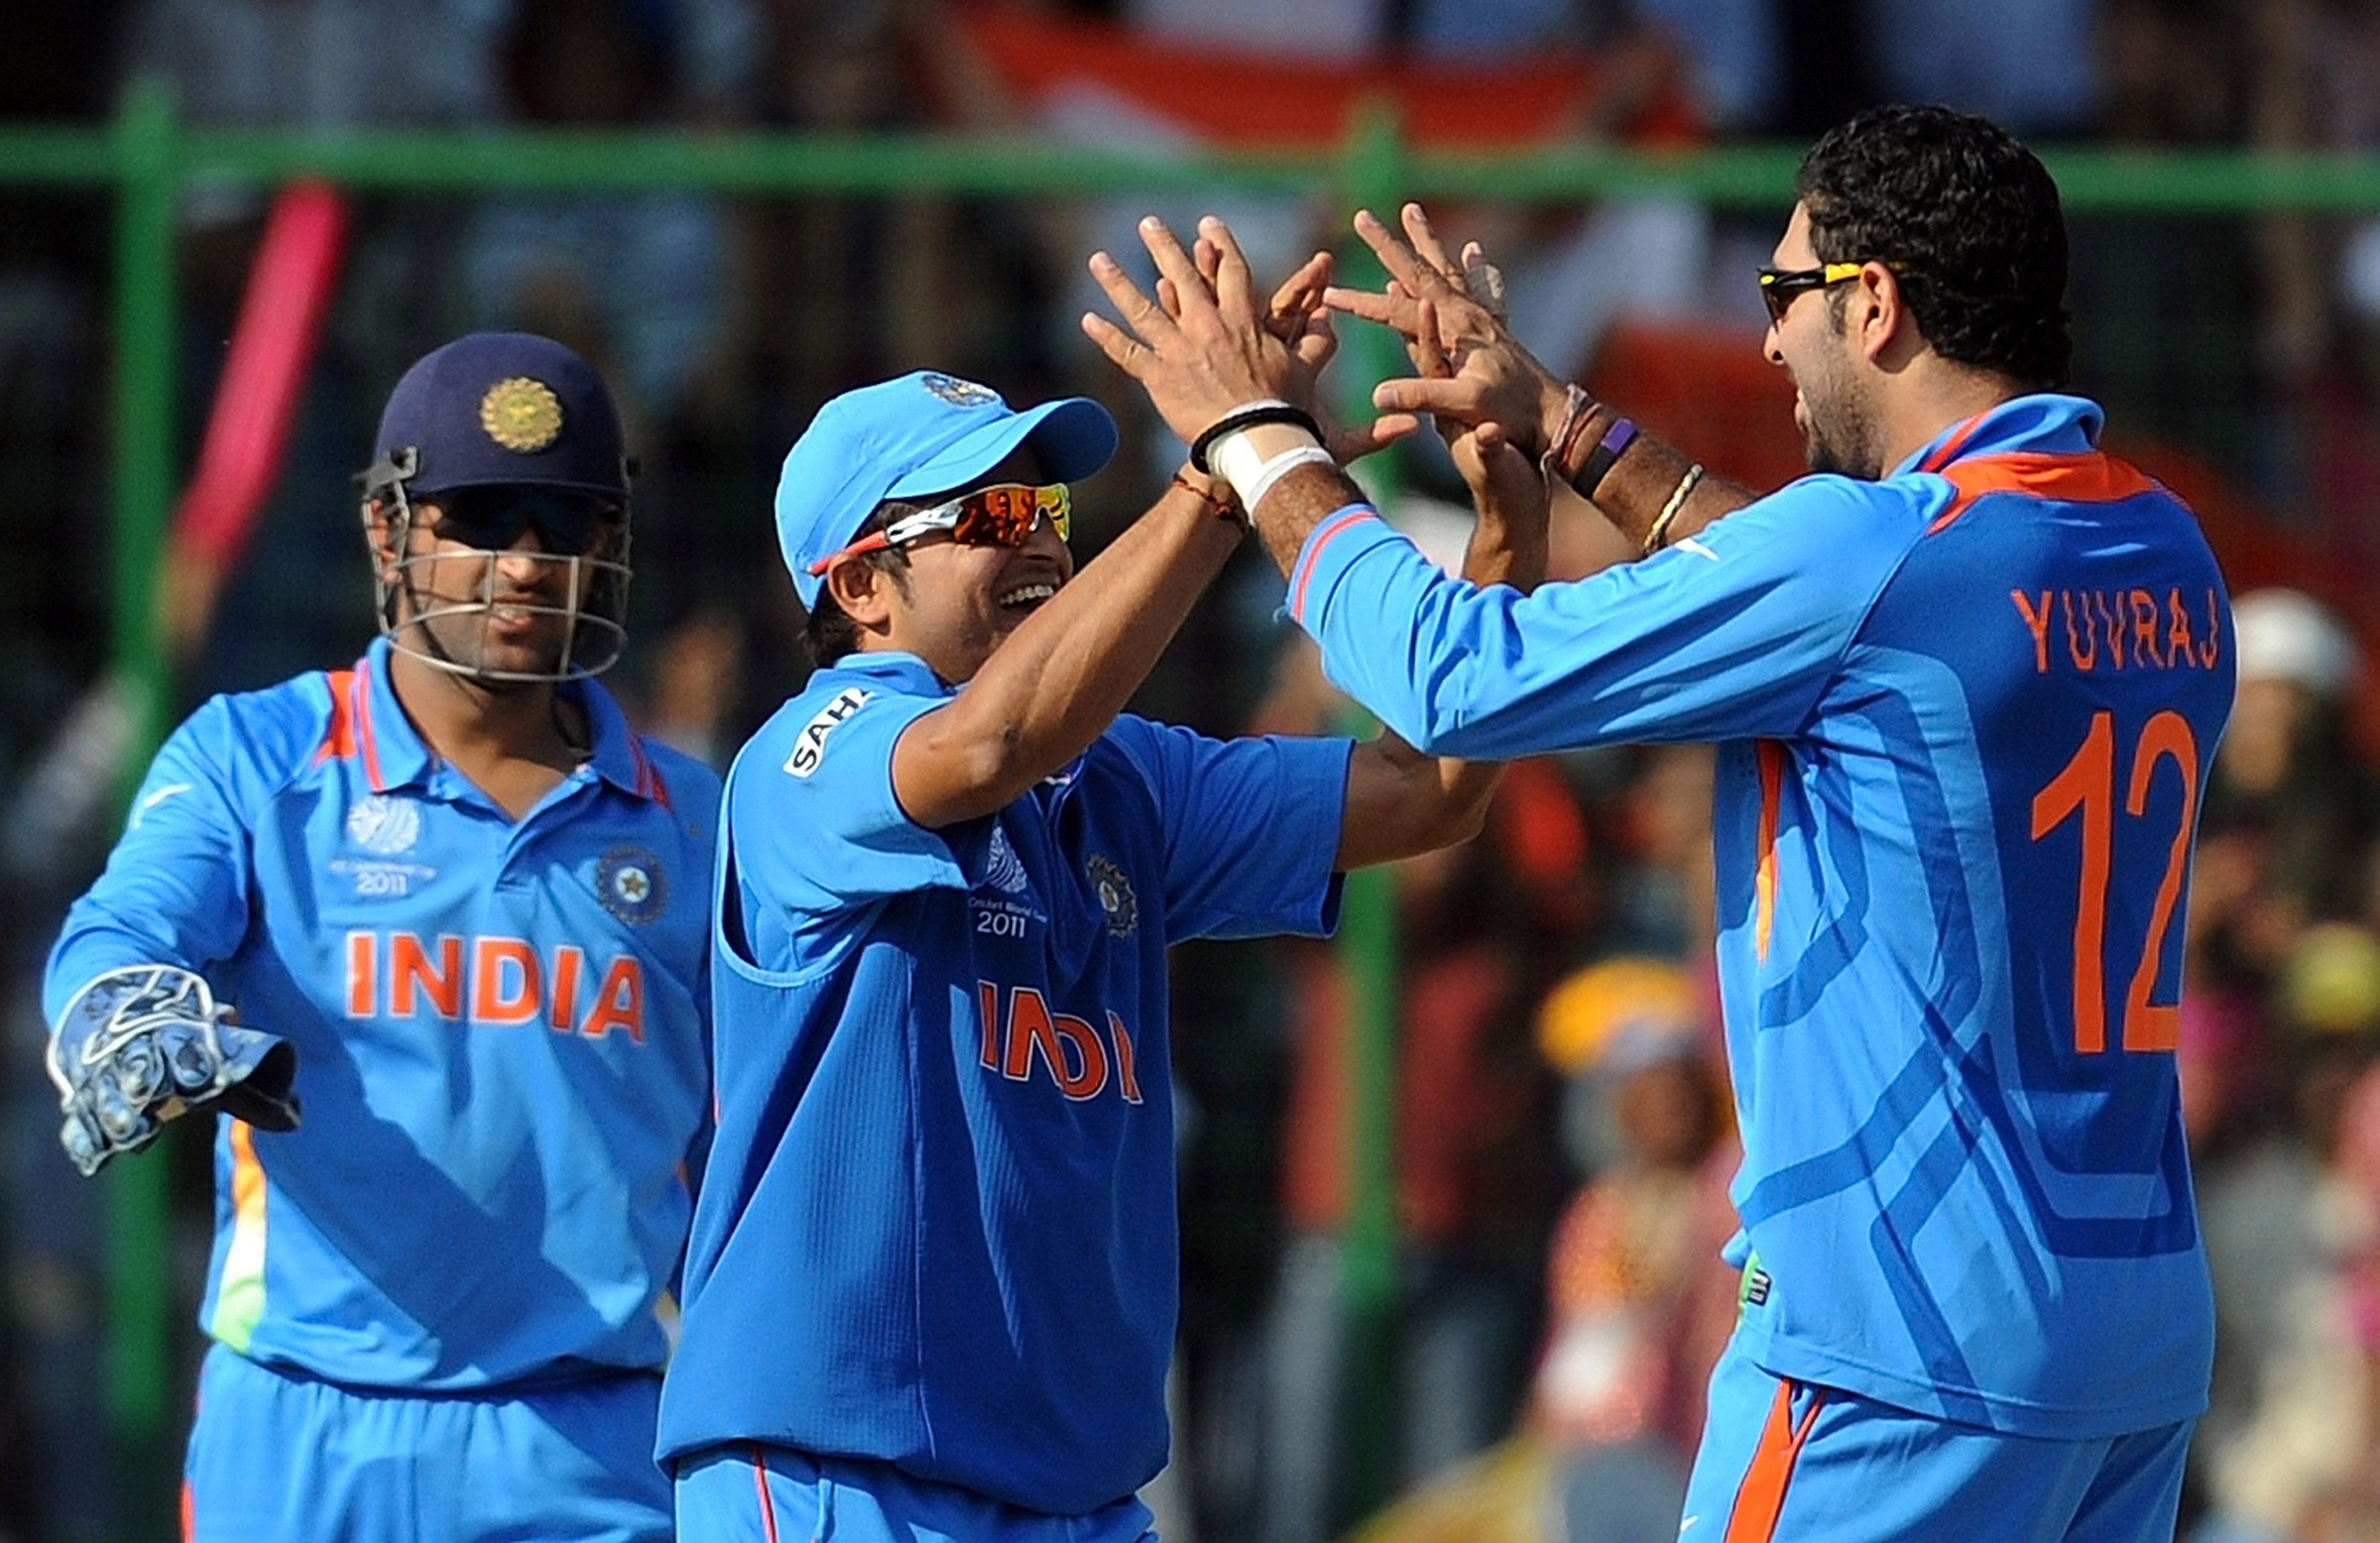 Team for ODI series and T20 announced, Yuvraj Singh axed